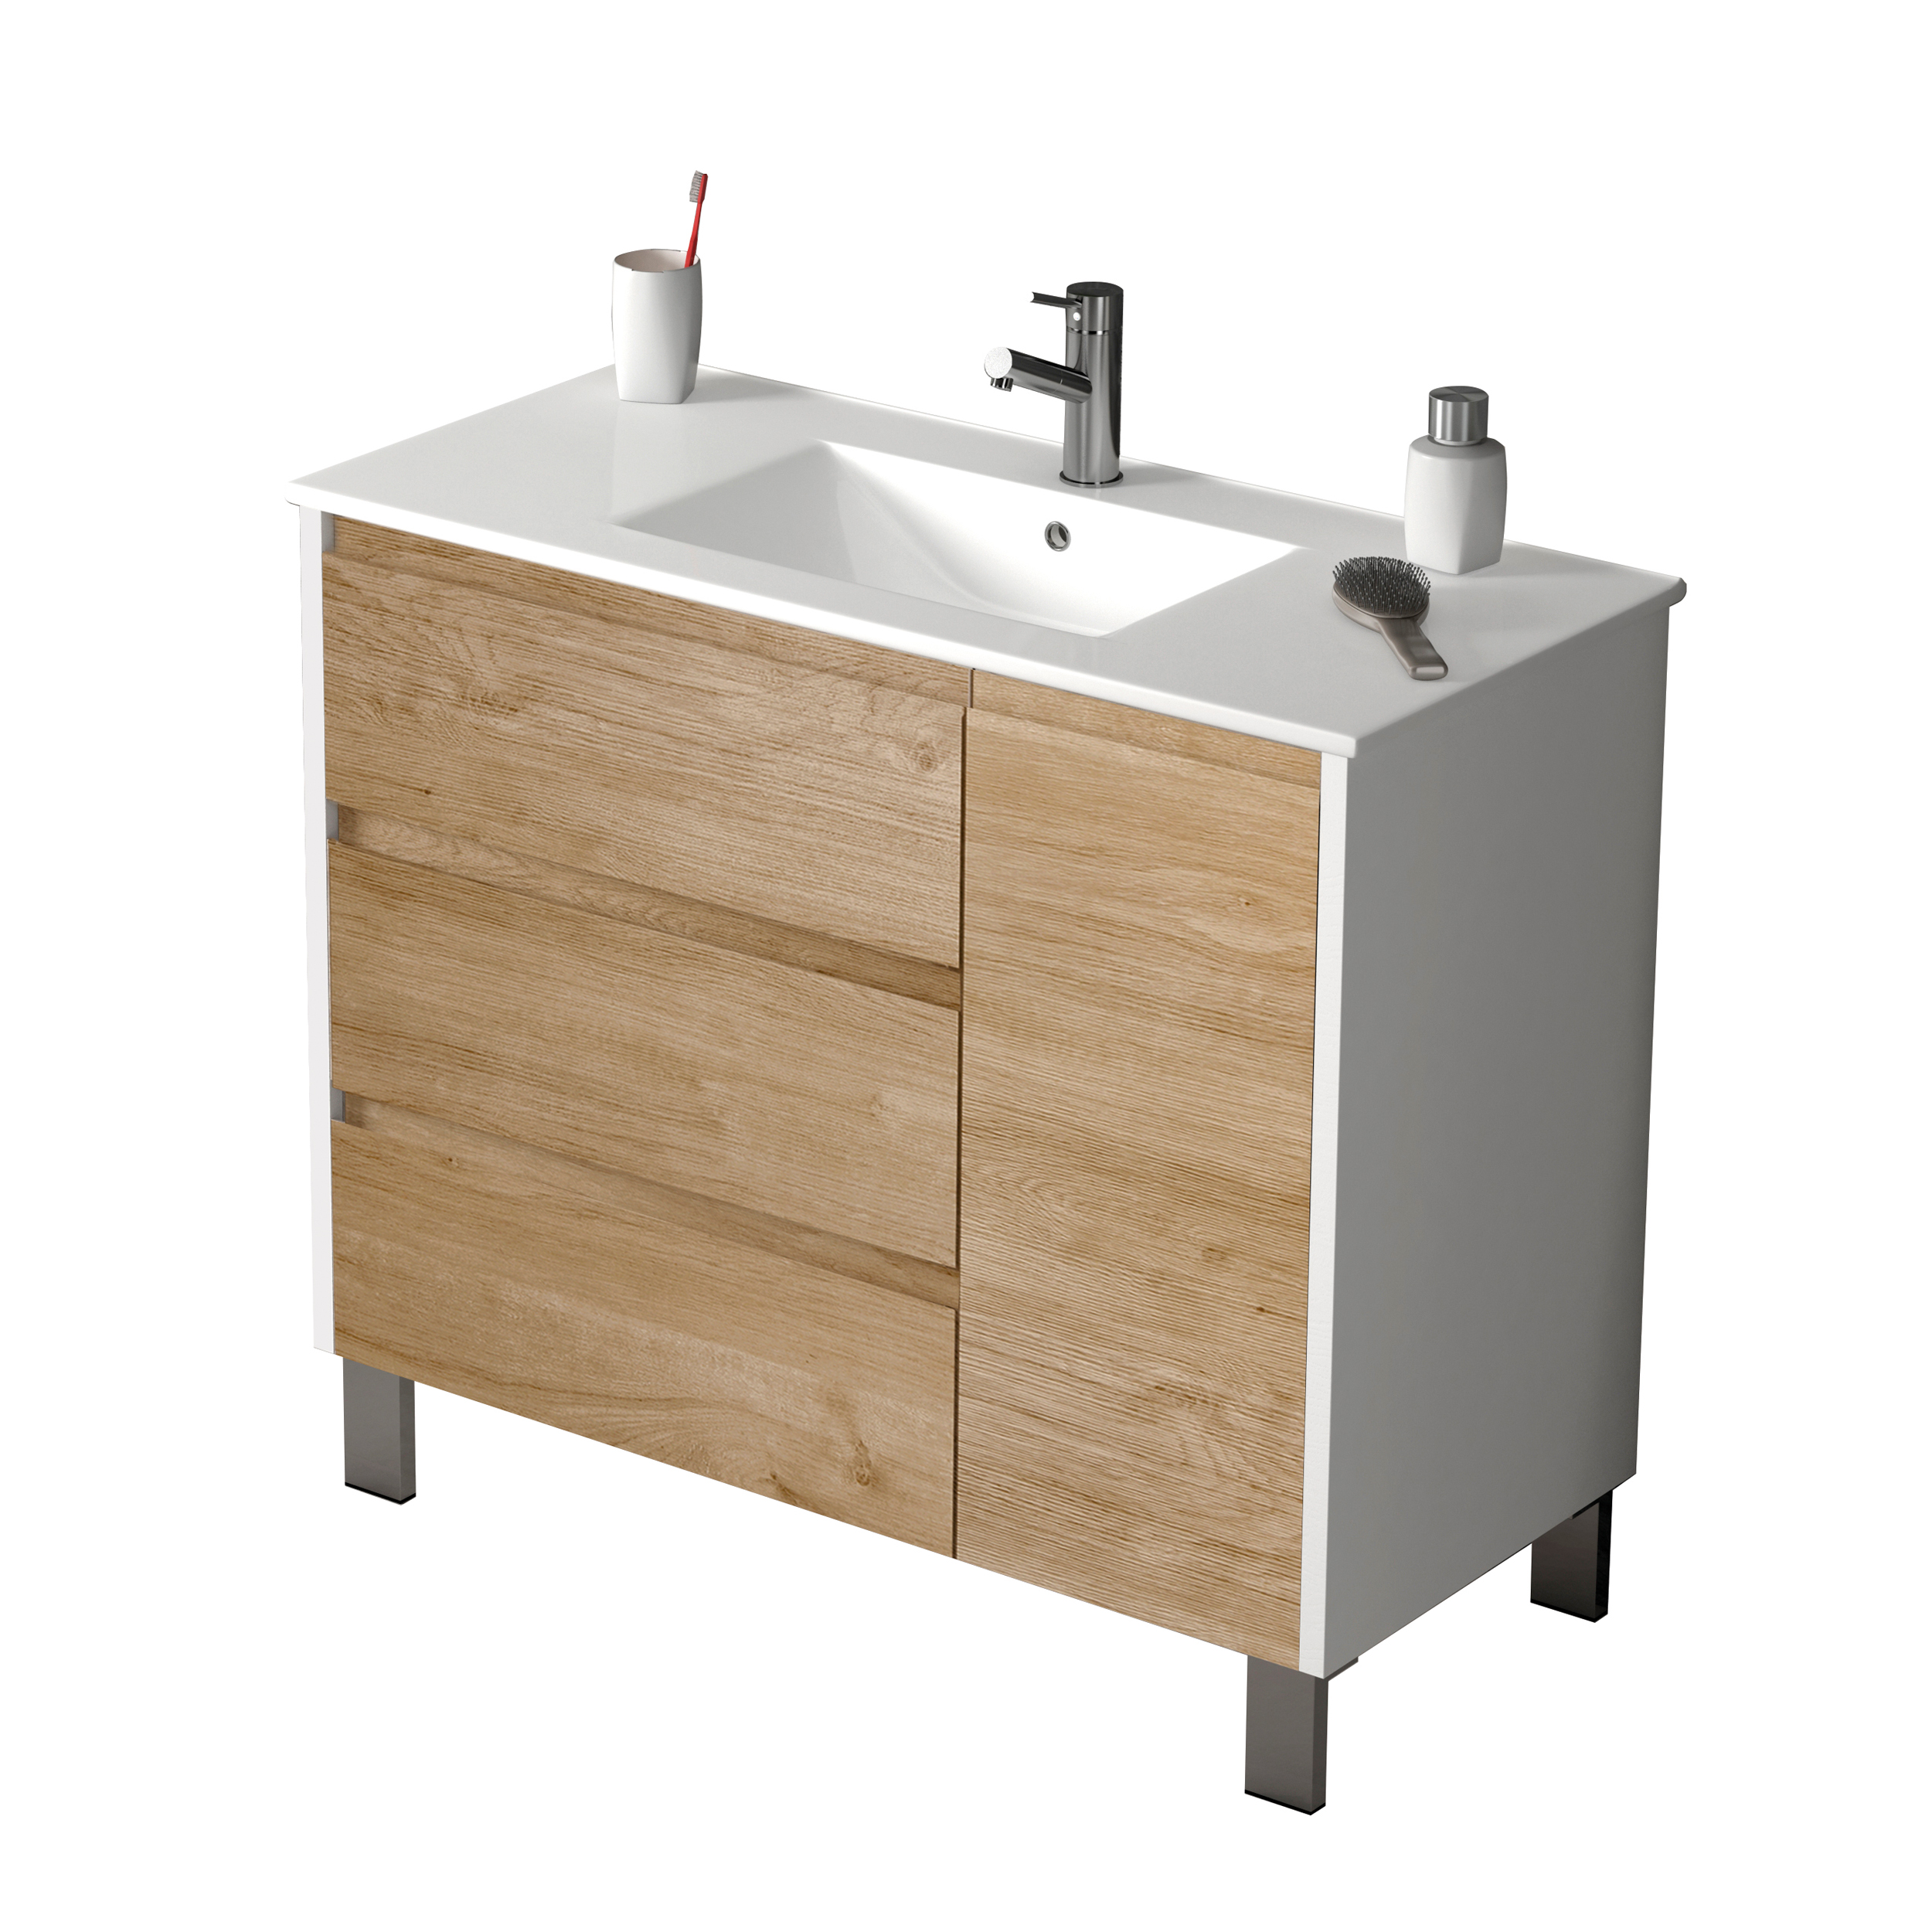 "EVVN543 39WHOAK A Main - Eviva Bella 39"" White/Oak Vanity with Porcelain sink"